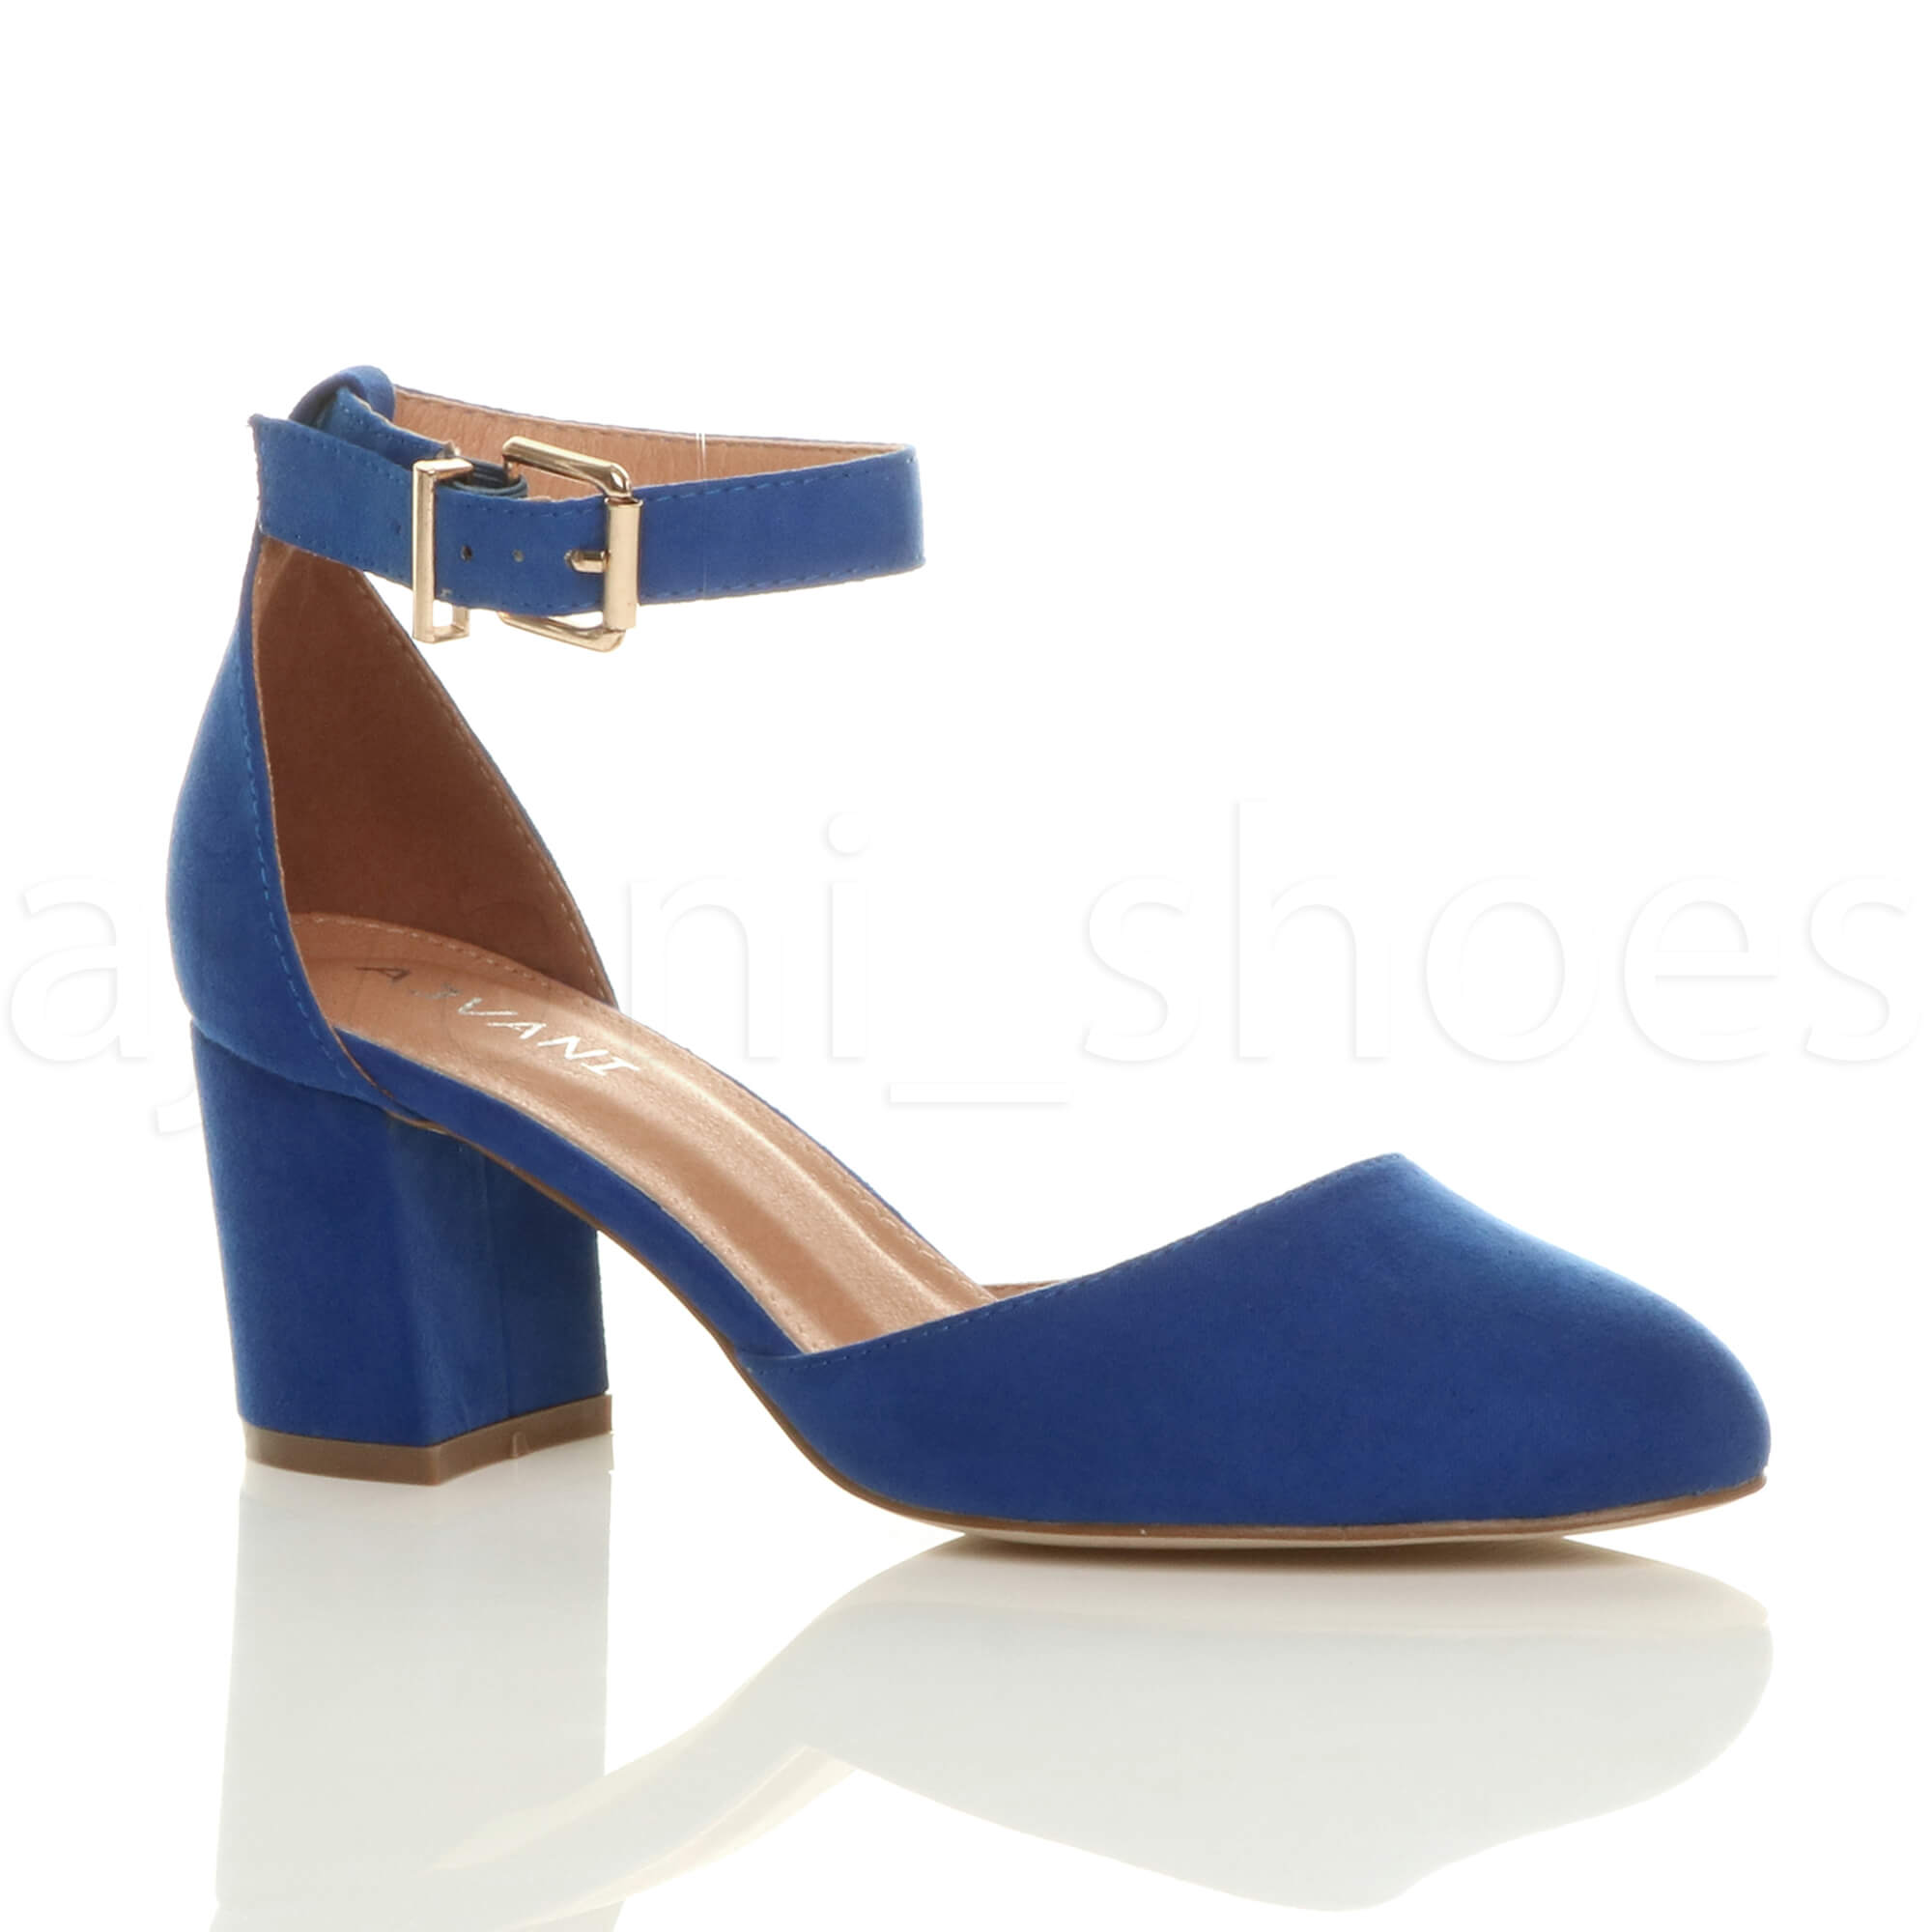 WOMENS-LADIES-LOW-MID-BLOCK-HEEL-ANKLE-STRAP-MARY-JANE-COURT-SHOES-SANDALS-SIZE